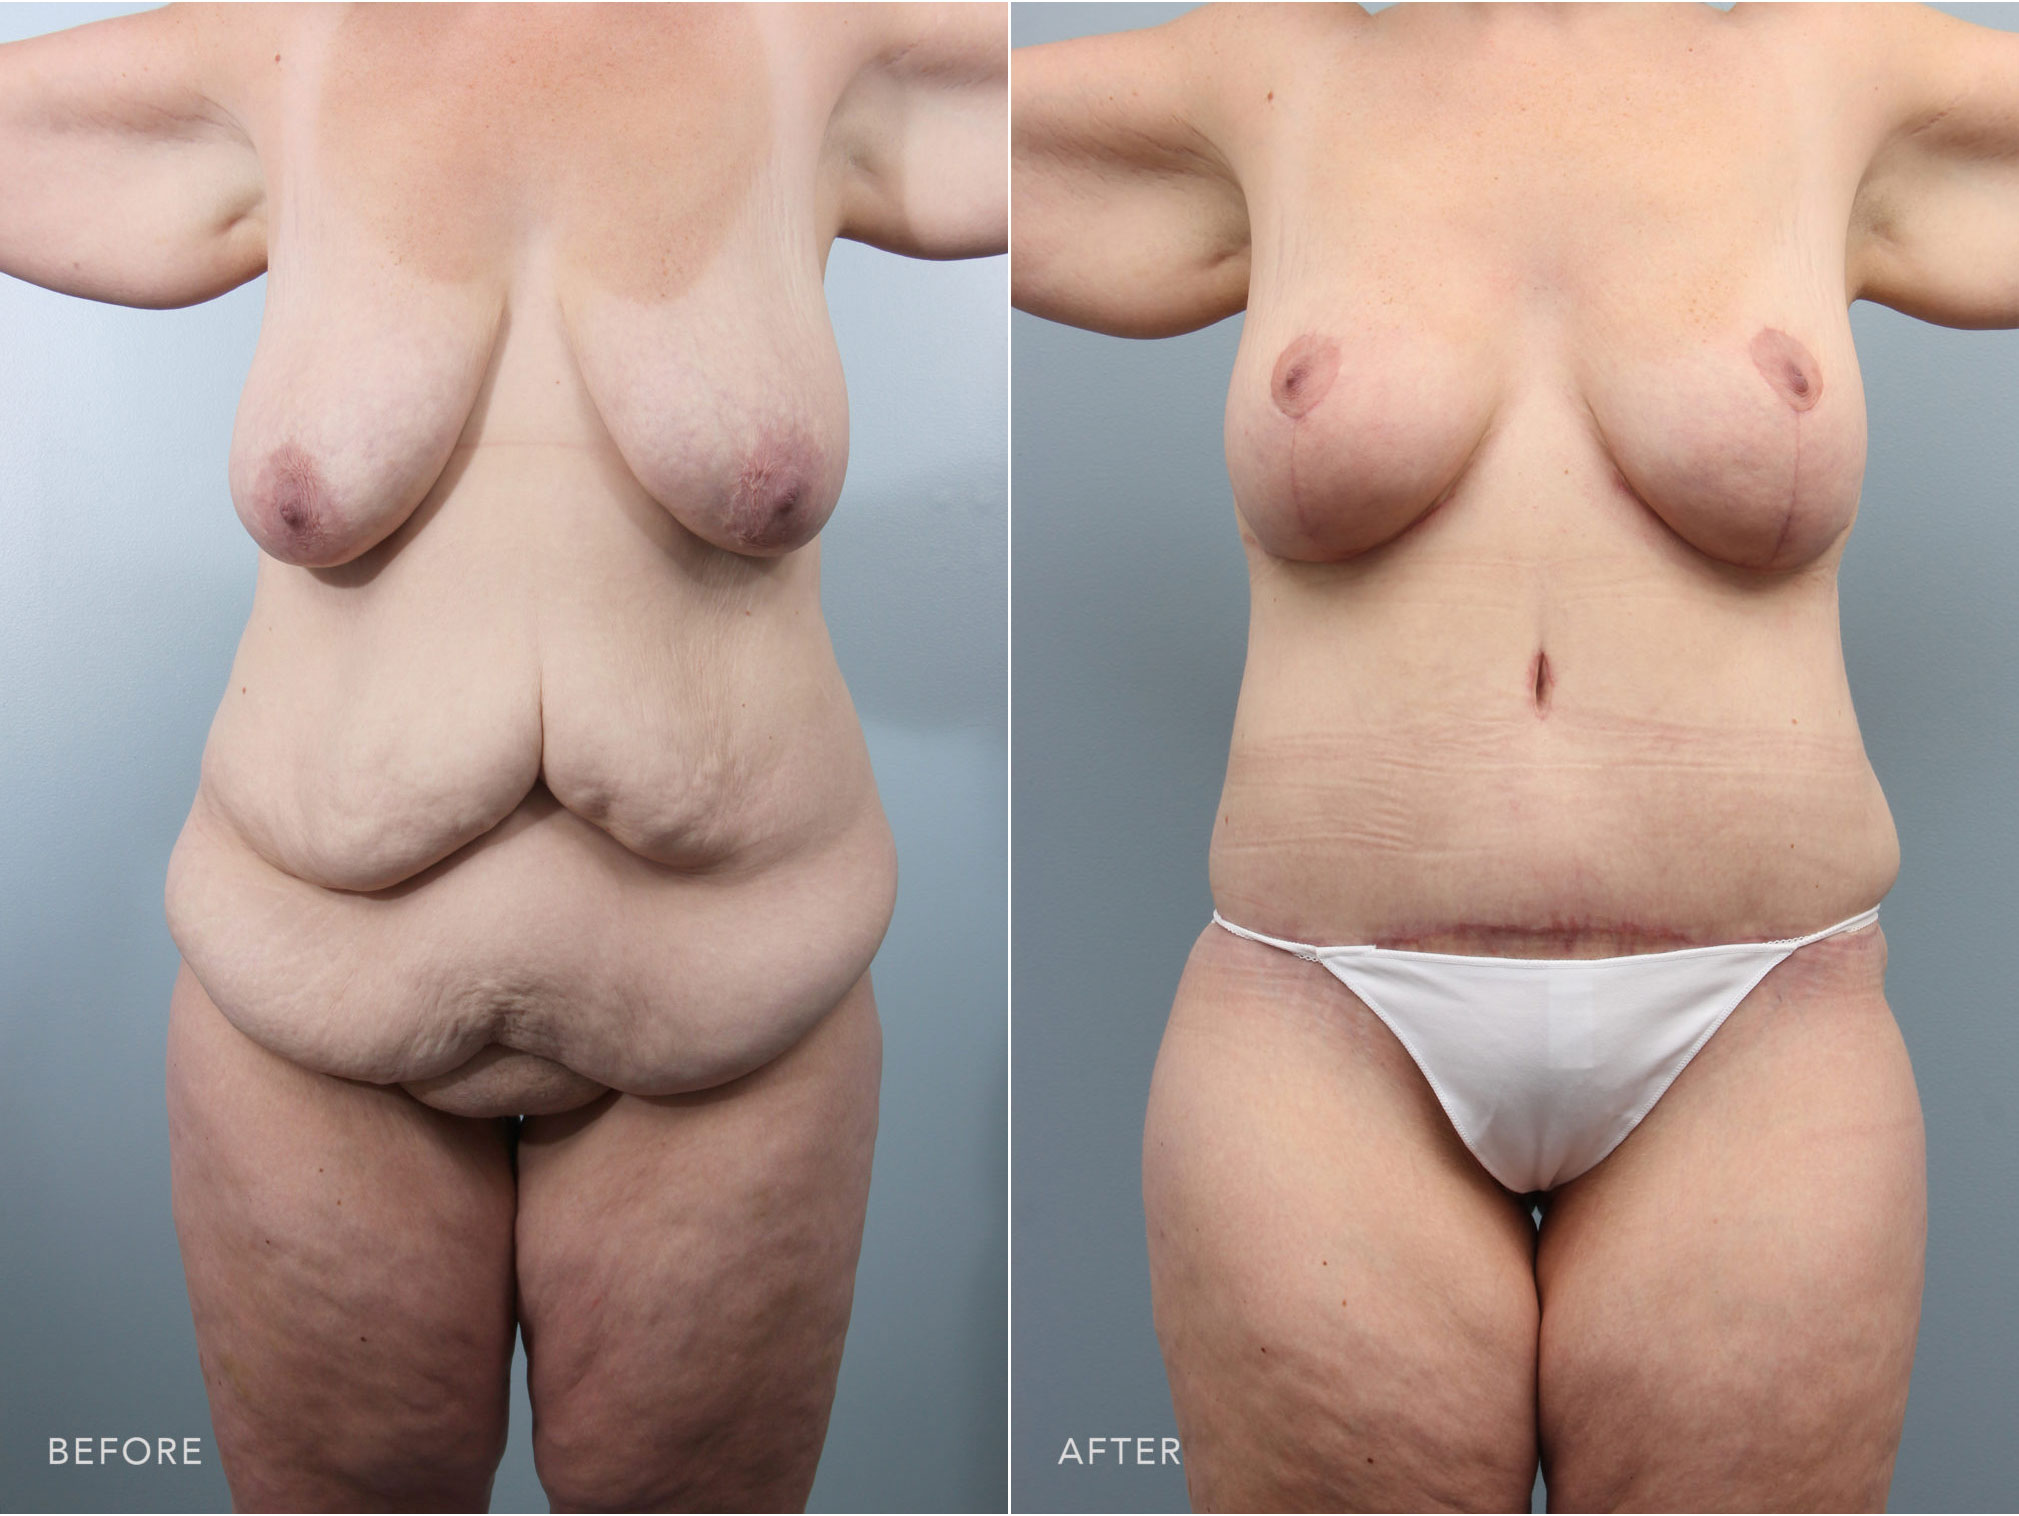 Closeup of female's midsection before and after tummy tuck surgery to remove excess skin after massive weight loss